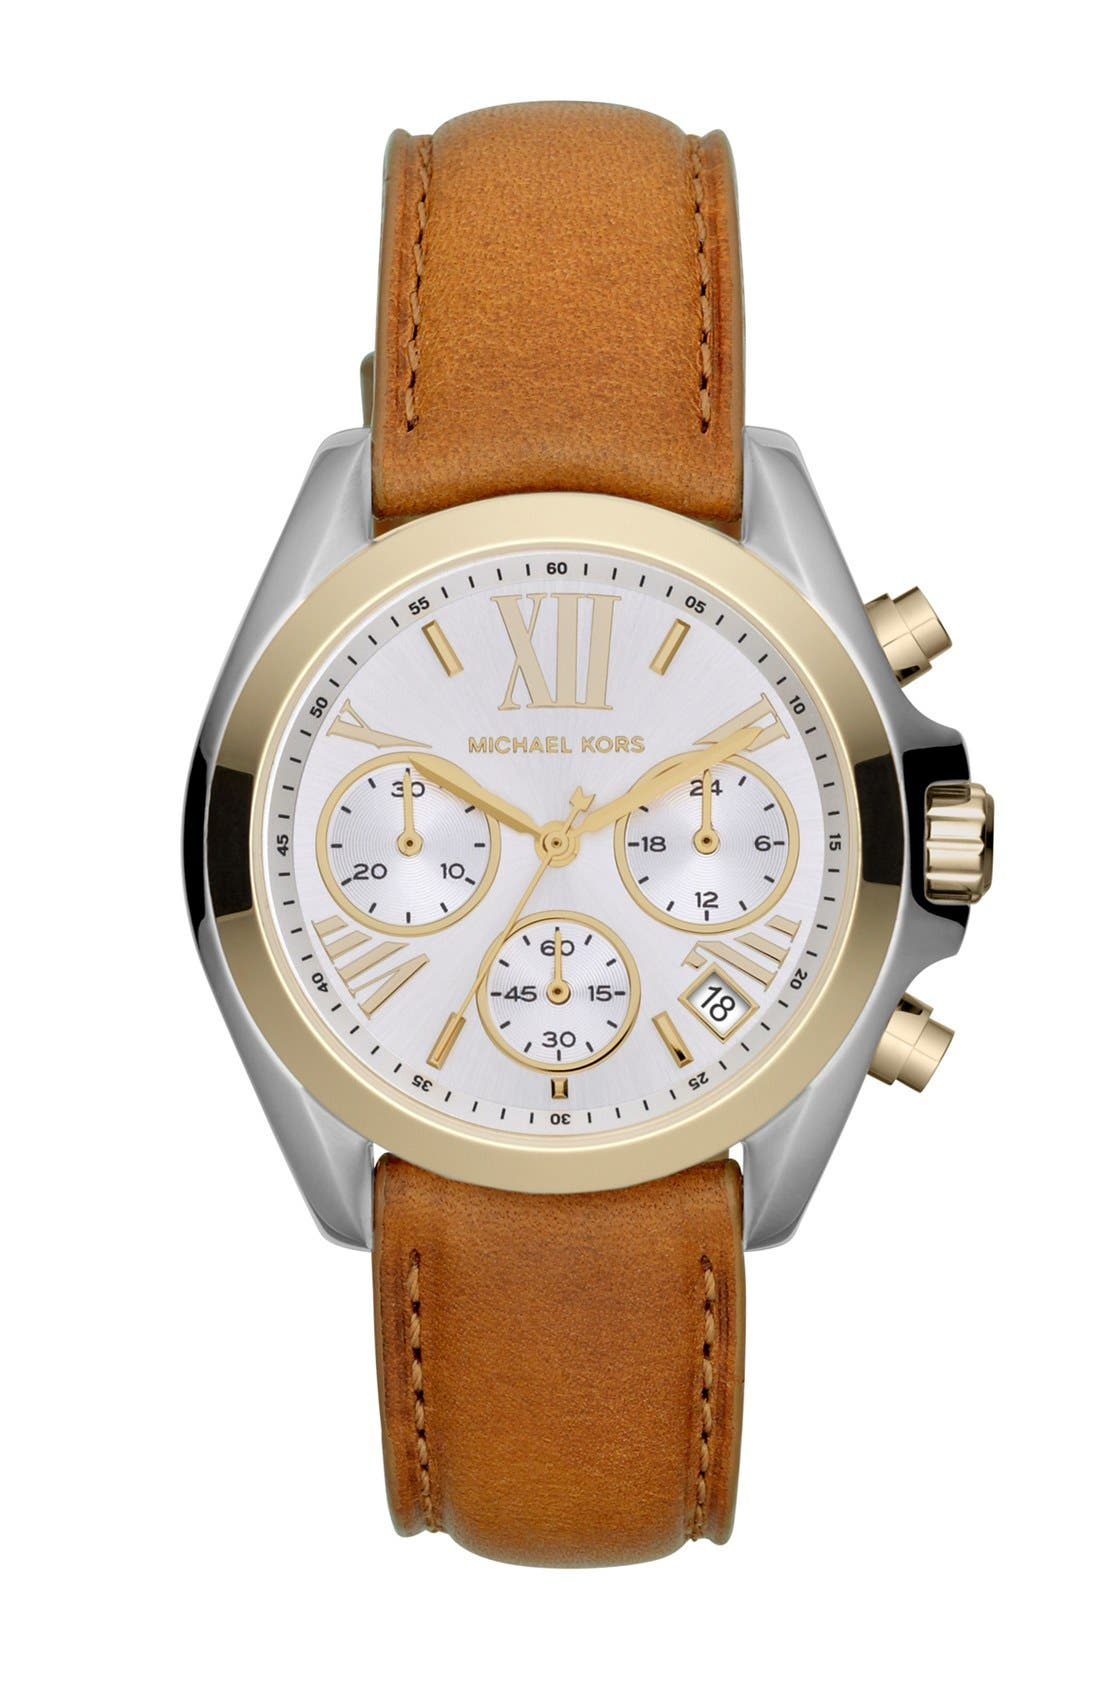 Main Image - Michael Kors 'Bradshaw - Mini' Chronograph Watch, 36mm